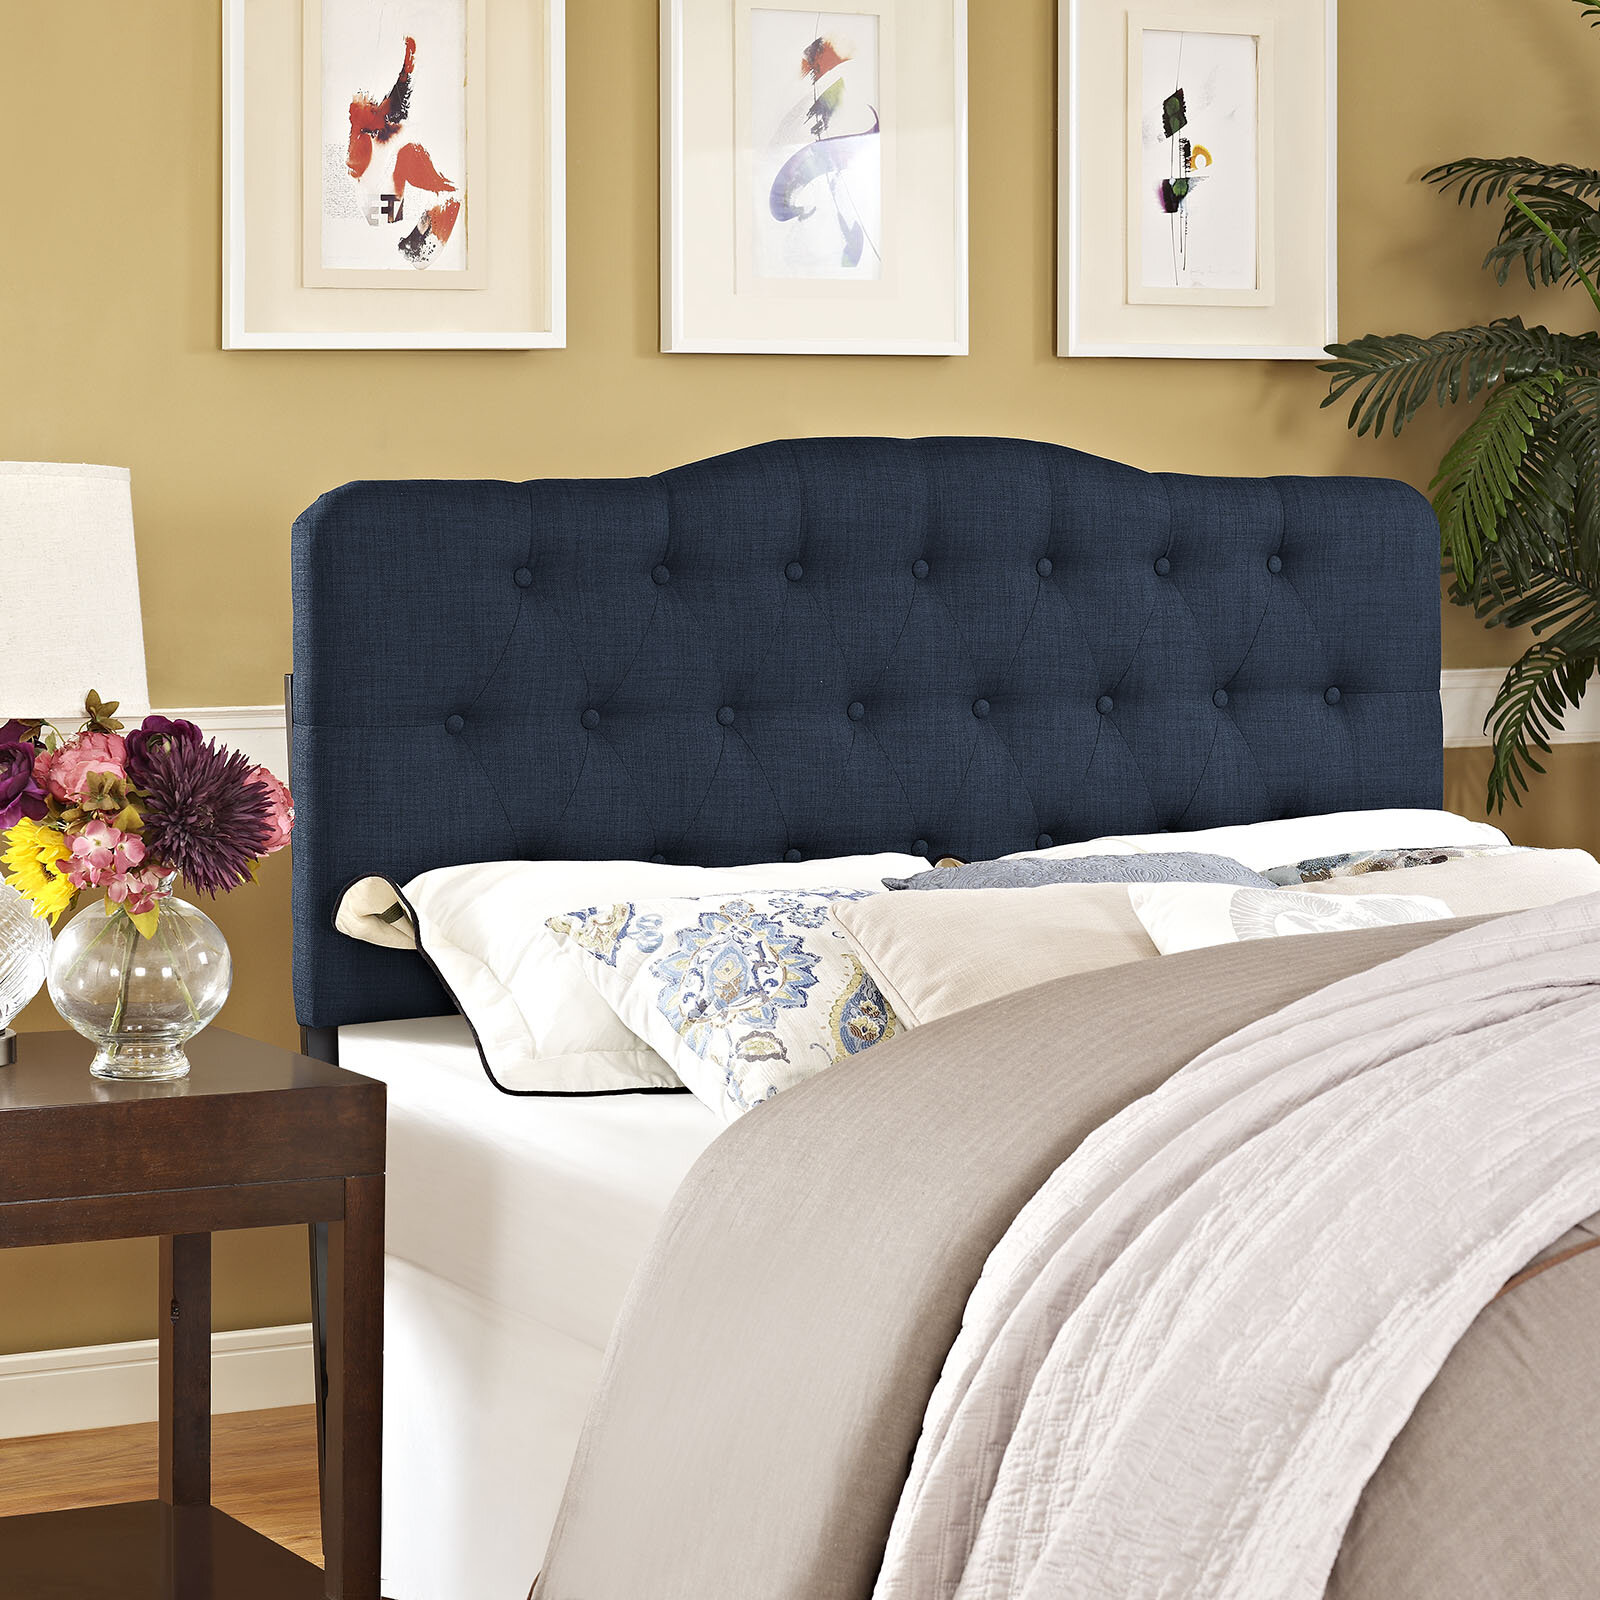 cloth design sets head headboard king amazing and maple queen fabric grey mirrored of for upholstered quilted silver tufted set size furniture headboards large bedroom frame